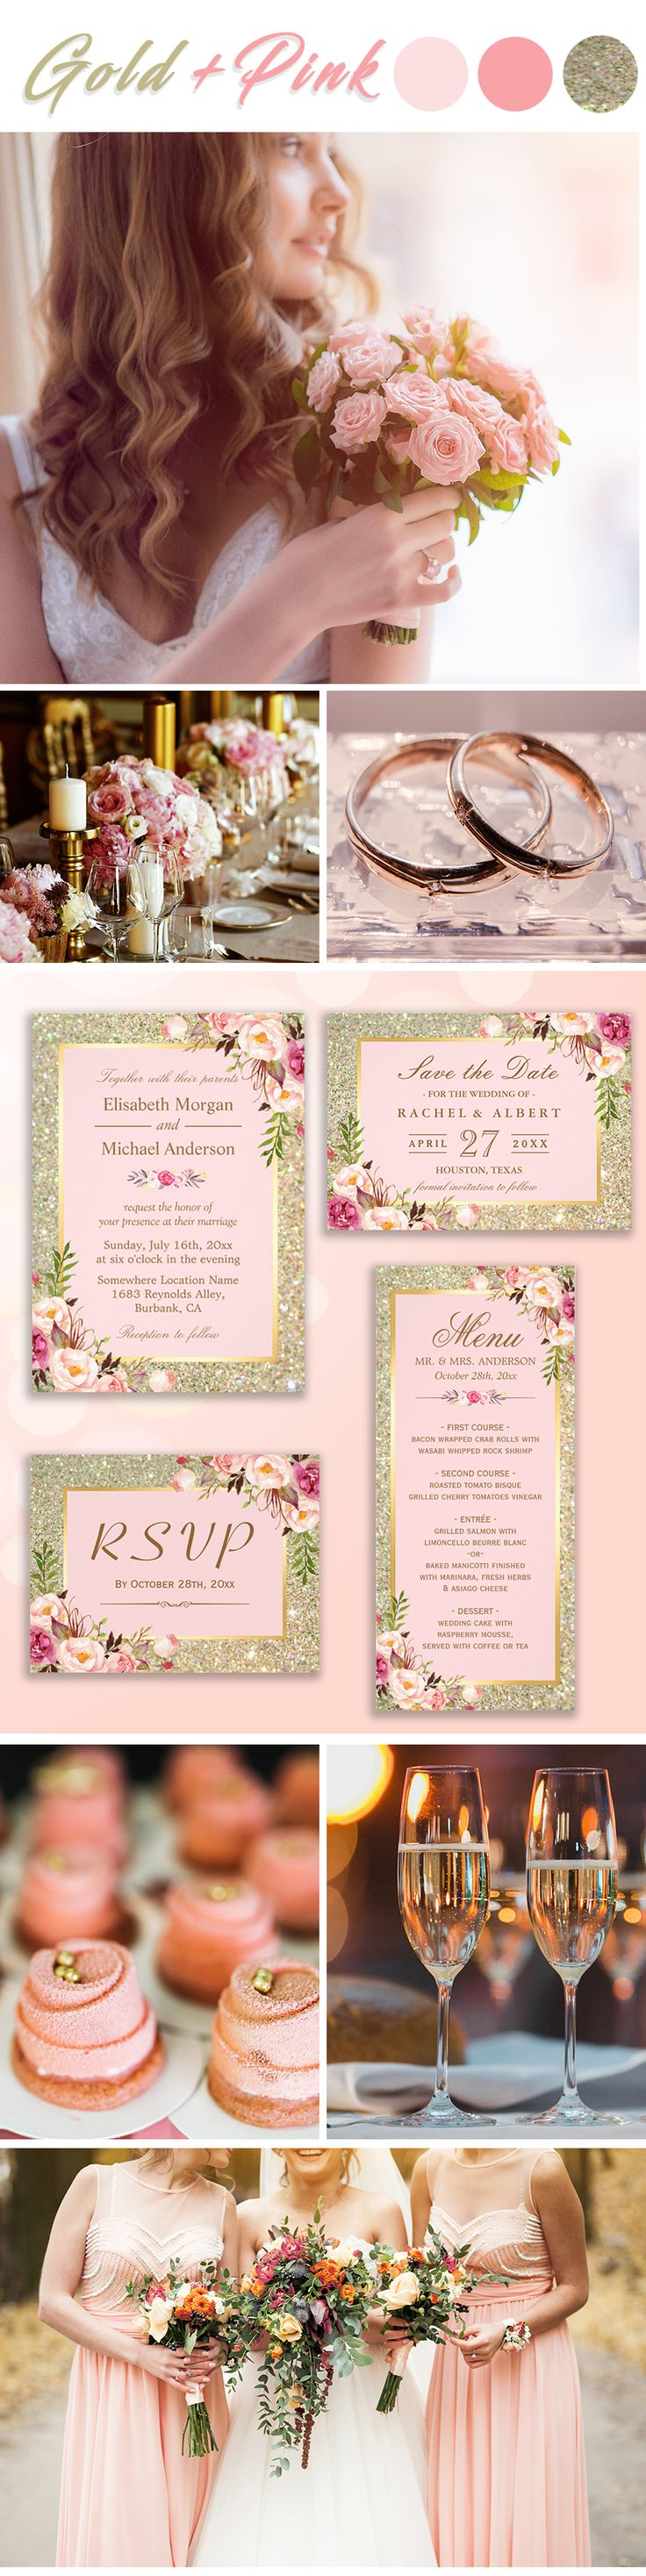 A Gold Glitters Blush Pink Floral Invitation